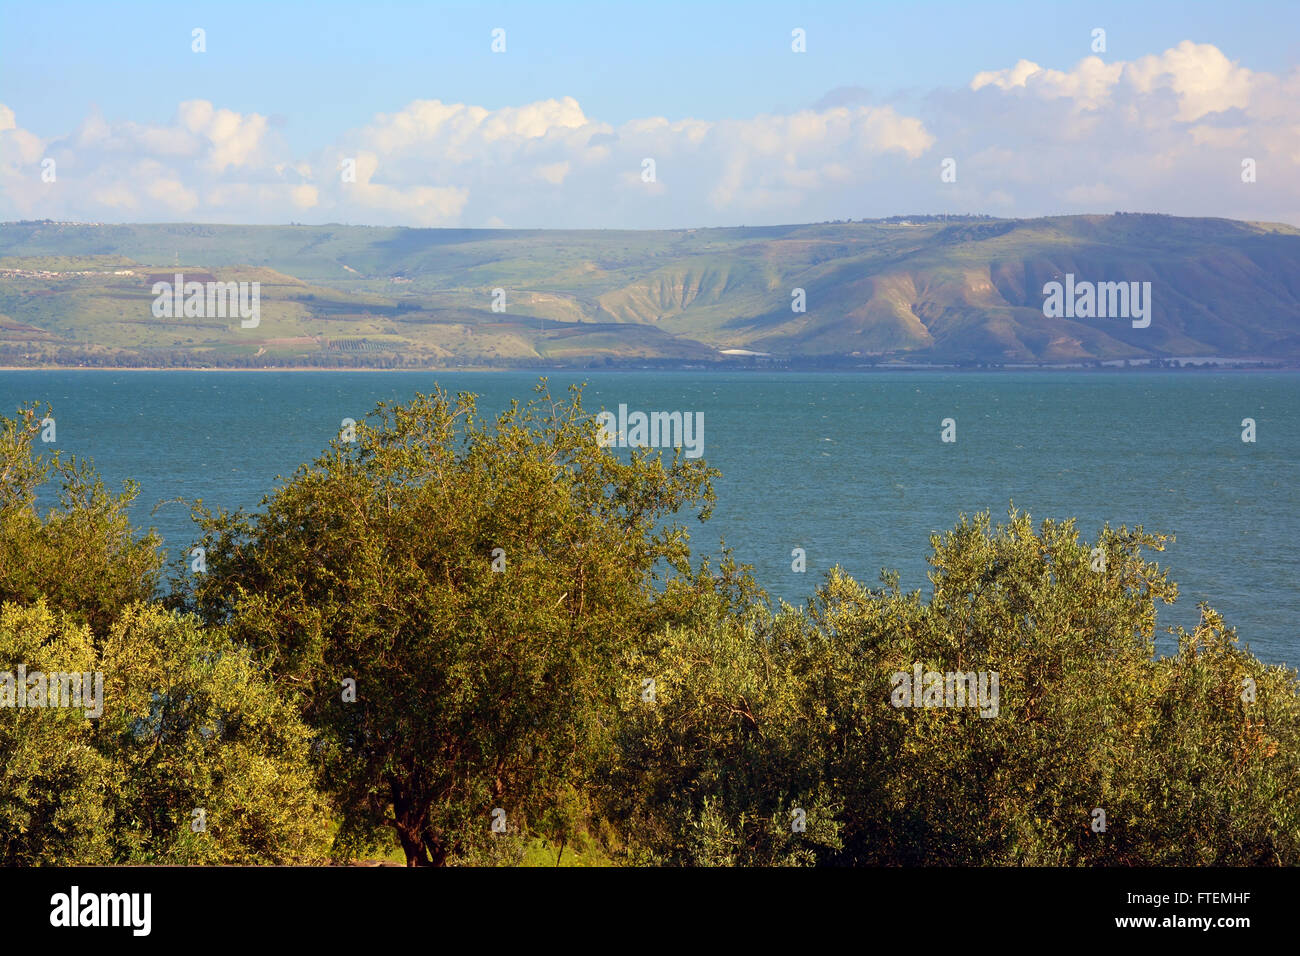 Sea of Galilee and Golan heights - Stock Image